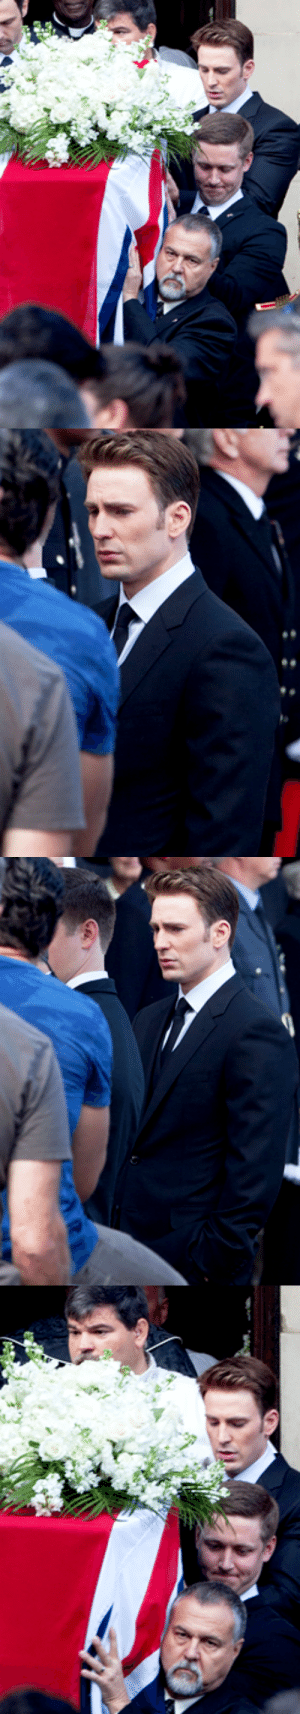 folie-a-ddeeuuxx:  hatzynz:  twoheartsneverlie:  constance-wu:Chris Evans carries a casket during a scene for Captain America: Civil War THAT IS A BRITISH FLAG THATS FUCKING PEGGY CARTER AND I AM DEAD I AM NOT PREPARED TO SEE STEVE ROGERS BURY PEGGY CARTER WHAT THE HELL MARVEL  a gif to show how i feel about this  I'M FUCKING WEEPING : AREA folie-a-ddeeuuxx:  hatzynz:  twoheartsneverlie:  constance-wu:Chris Evans carries a casket during a scene for Captain America: Civil War THAT IS A BRITISH FLAG THATS FUCKING PEGGY CARTER AND I AM DEAD I AM NOT PREPARED TO SEE STEVE ROGERS BURY PEGGY CARTER WHAT THE HELL MARVEL  a gif to show how i feel about this  I'M FUCKING WEEPING